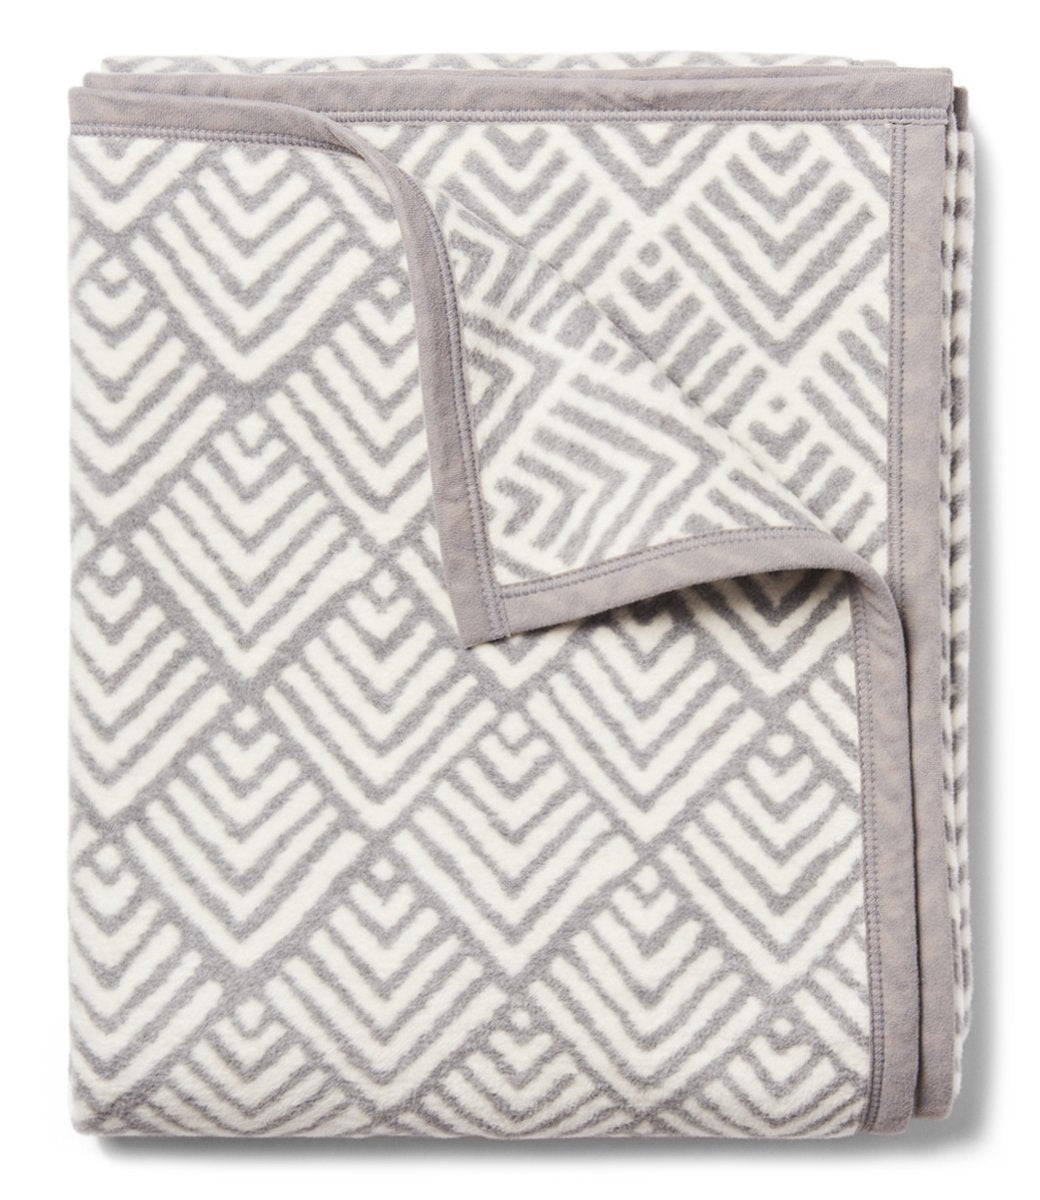 Oyster Cove Diamonds Grey Chappy Wrap